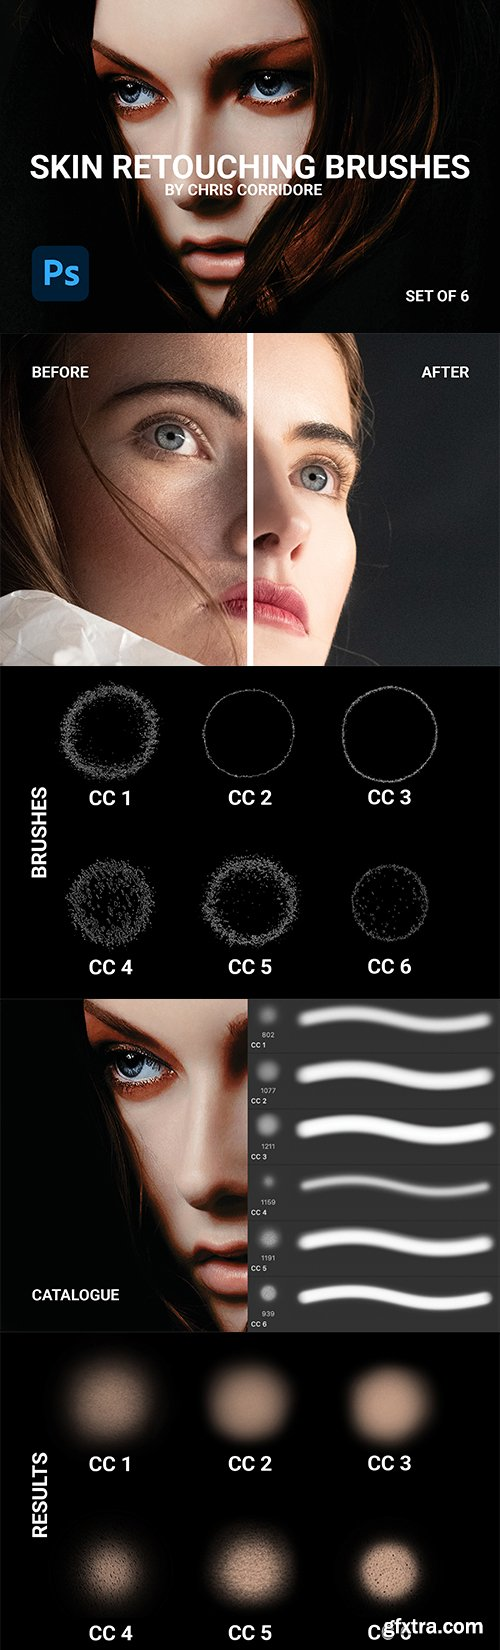 CreativeMarket - Skin Retouching Brushes (Set of 6) 5982366